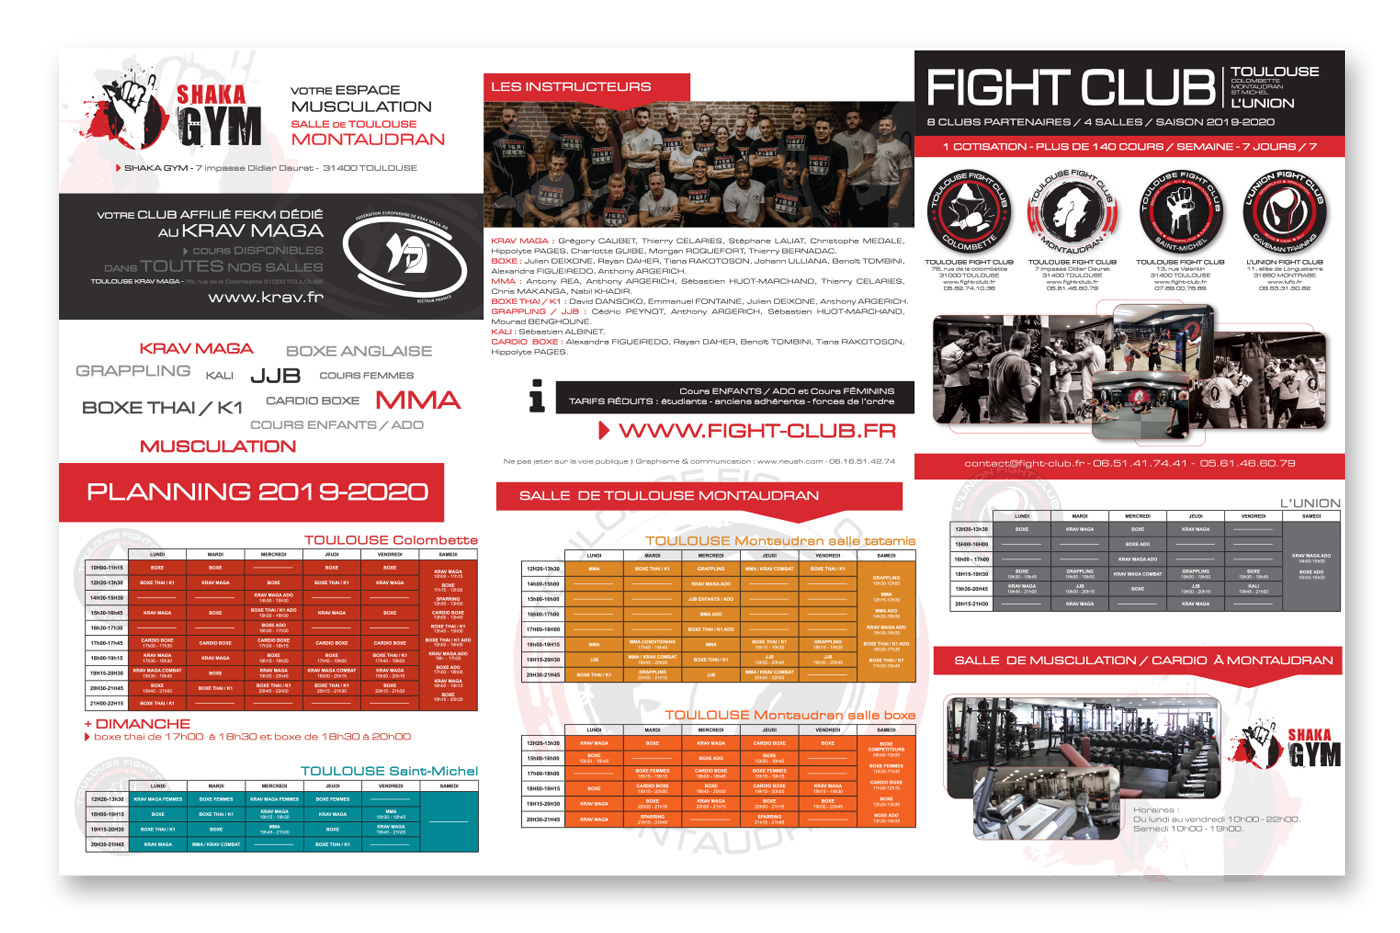 Flyer-ToulouseFightClub